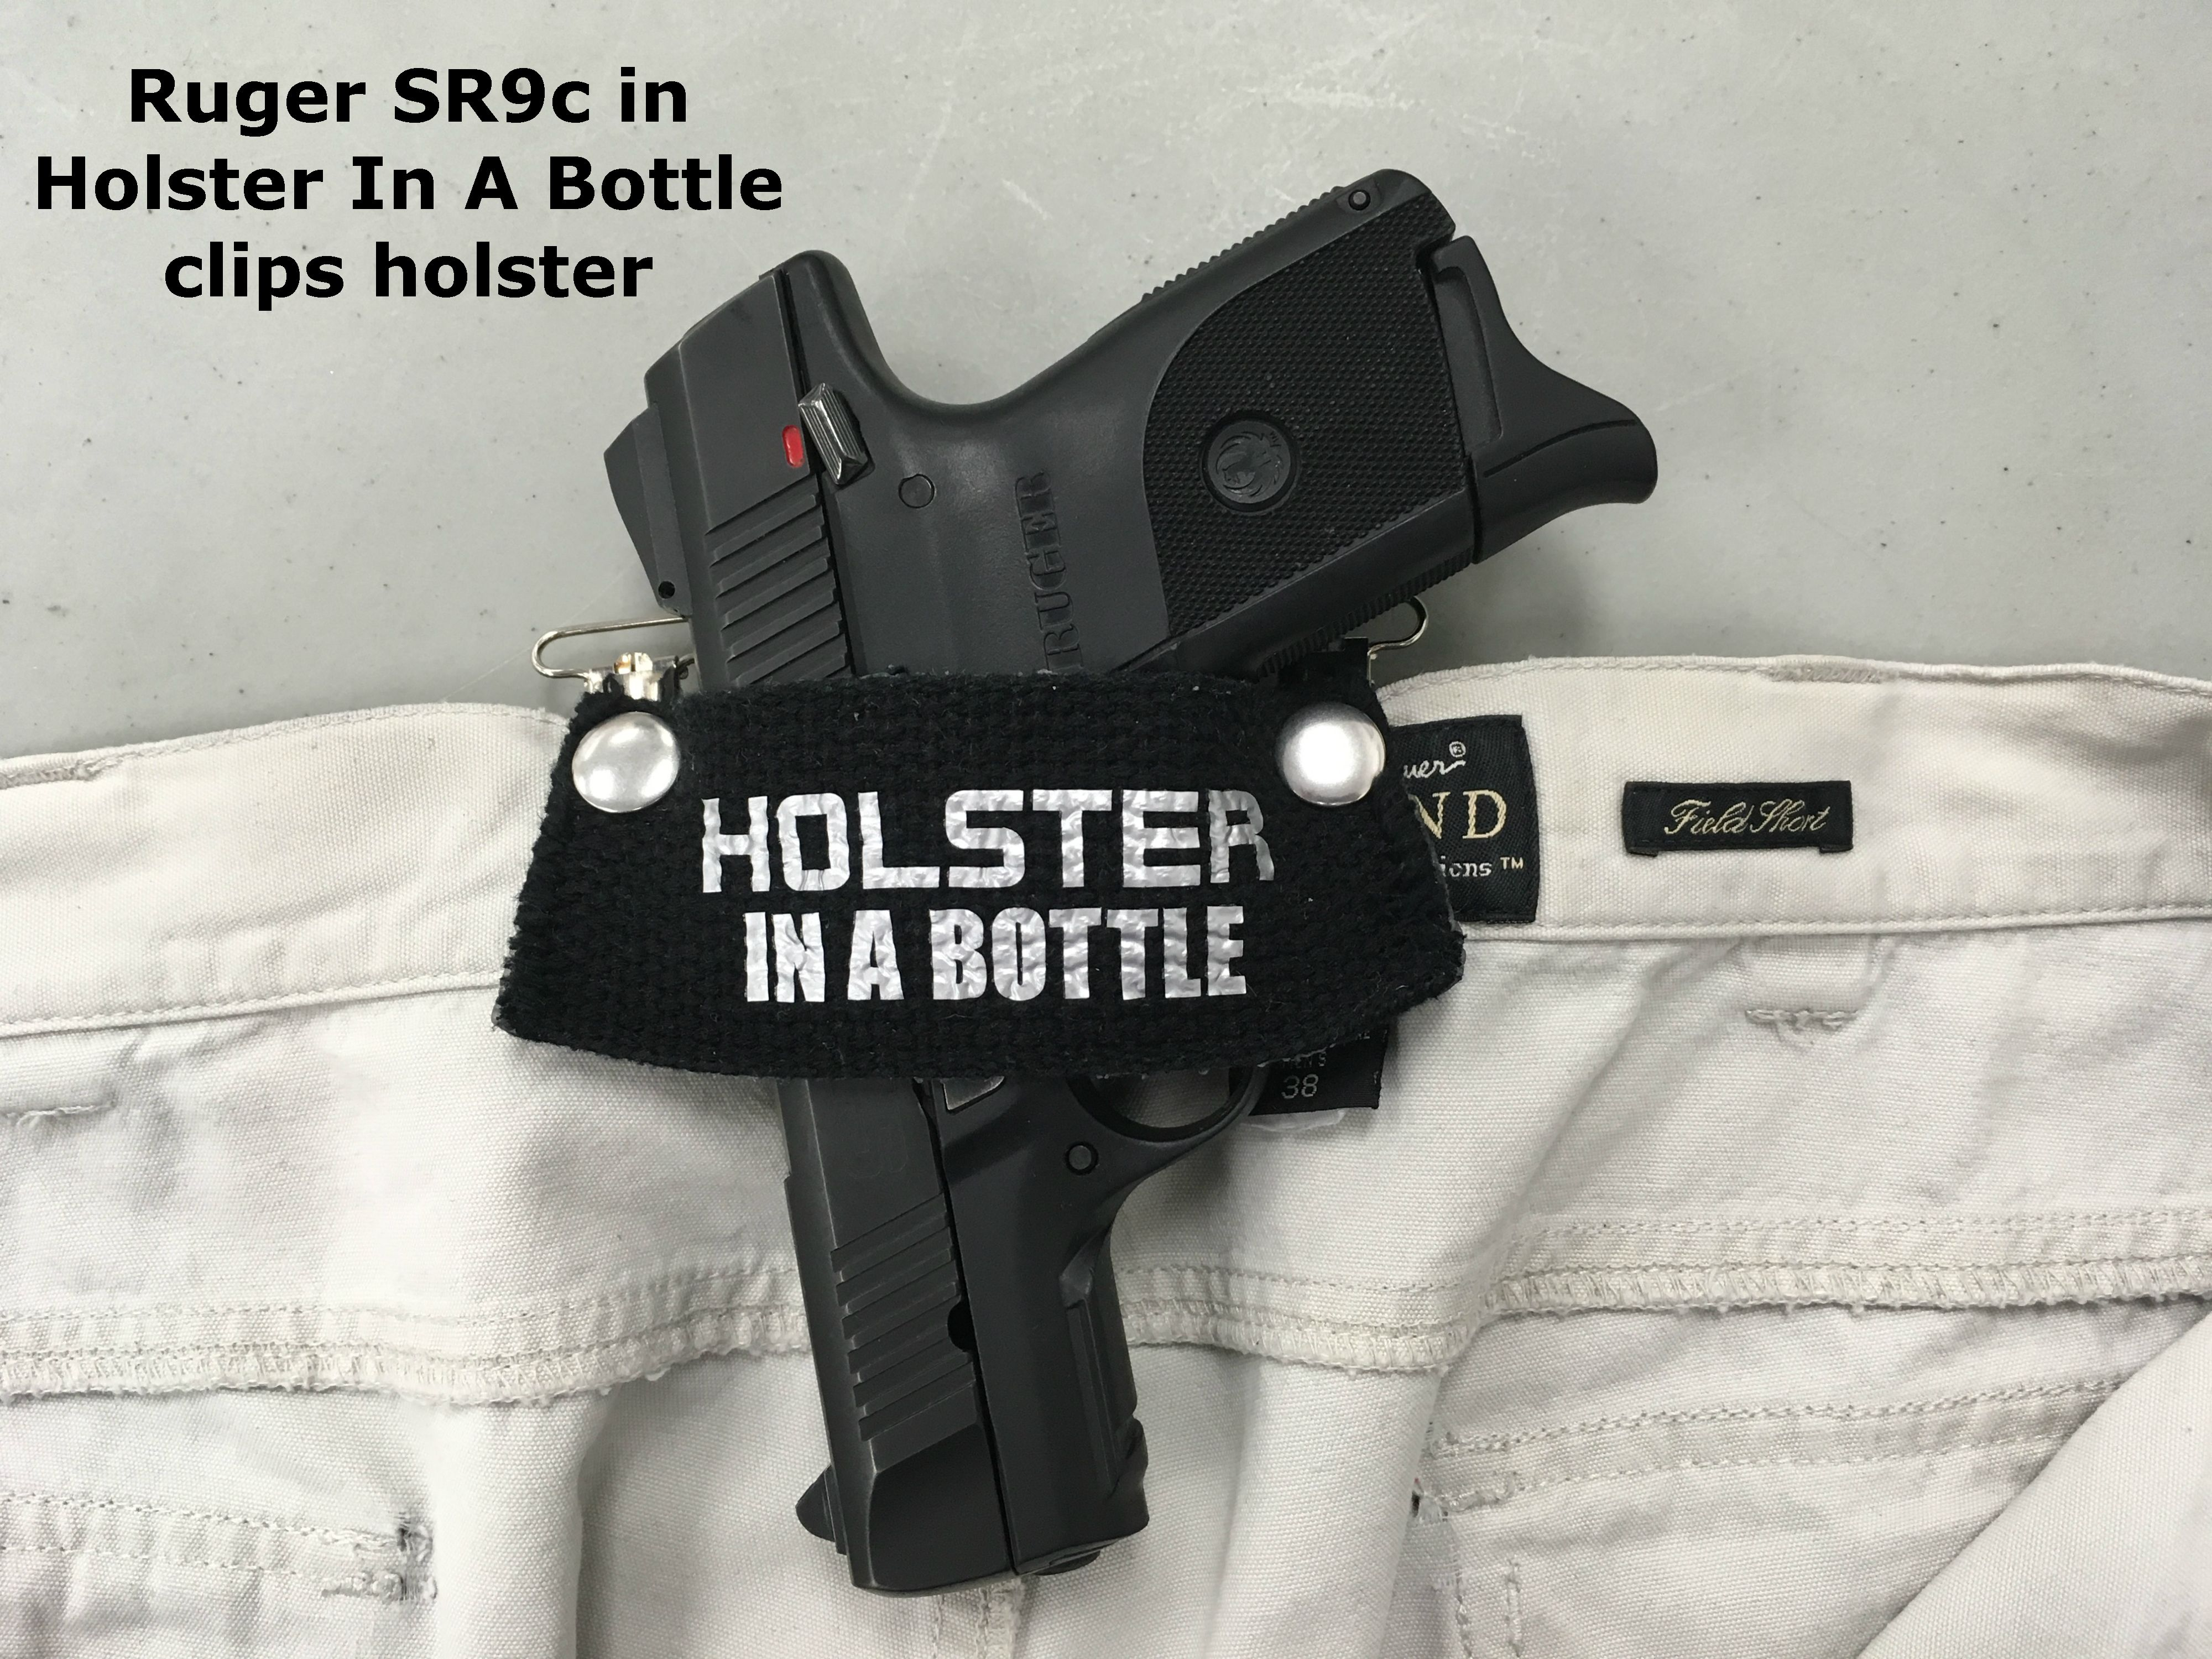 Does the HolsterInABottle com clips style work with     Ruger SR9c